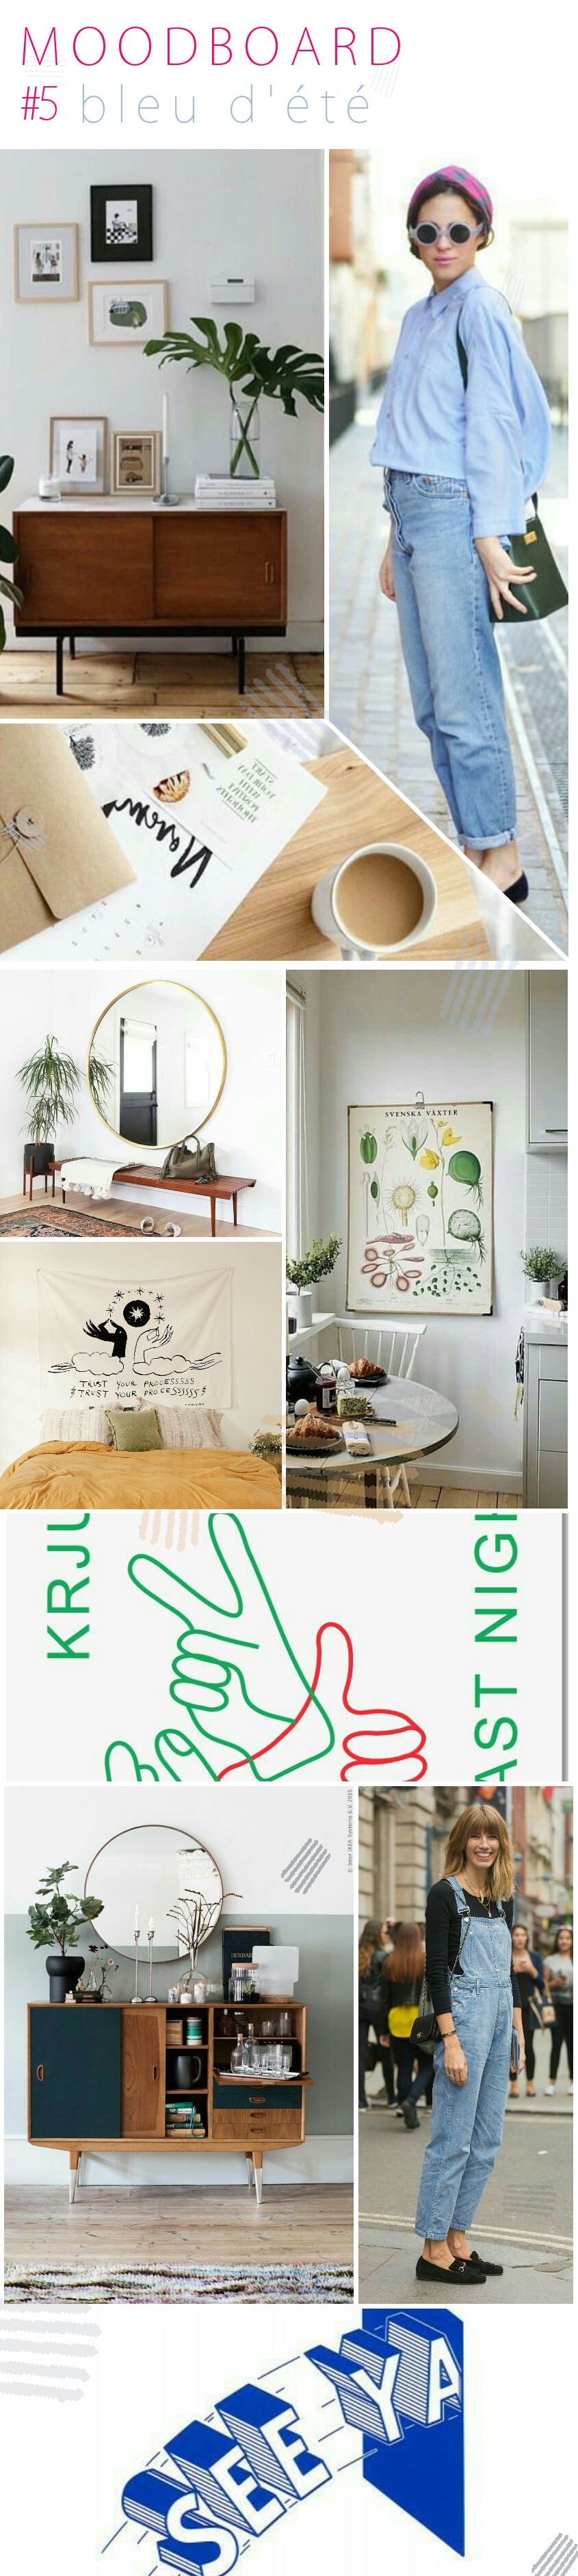 ruedelindustrie_moodboard_aout